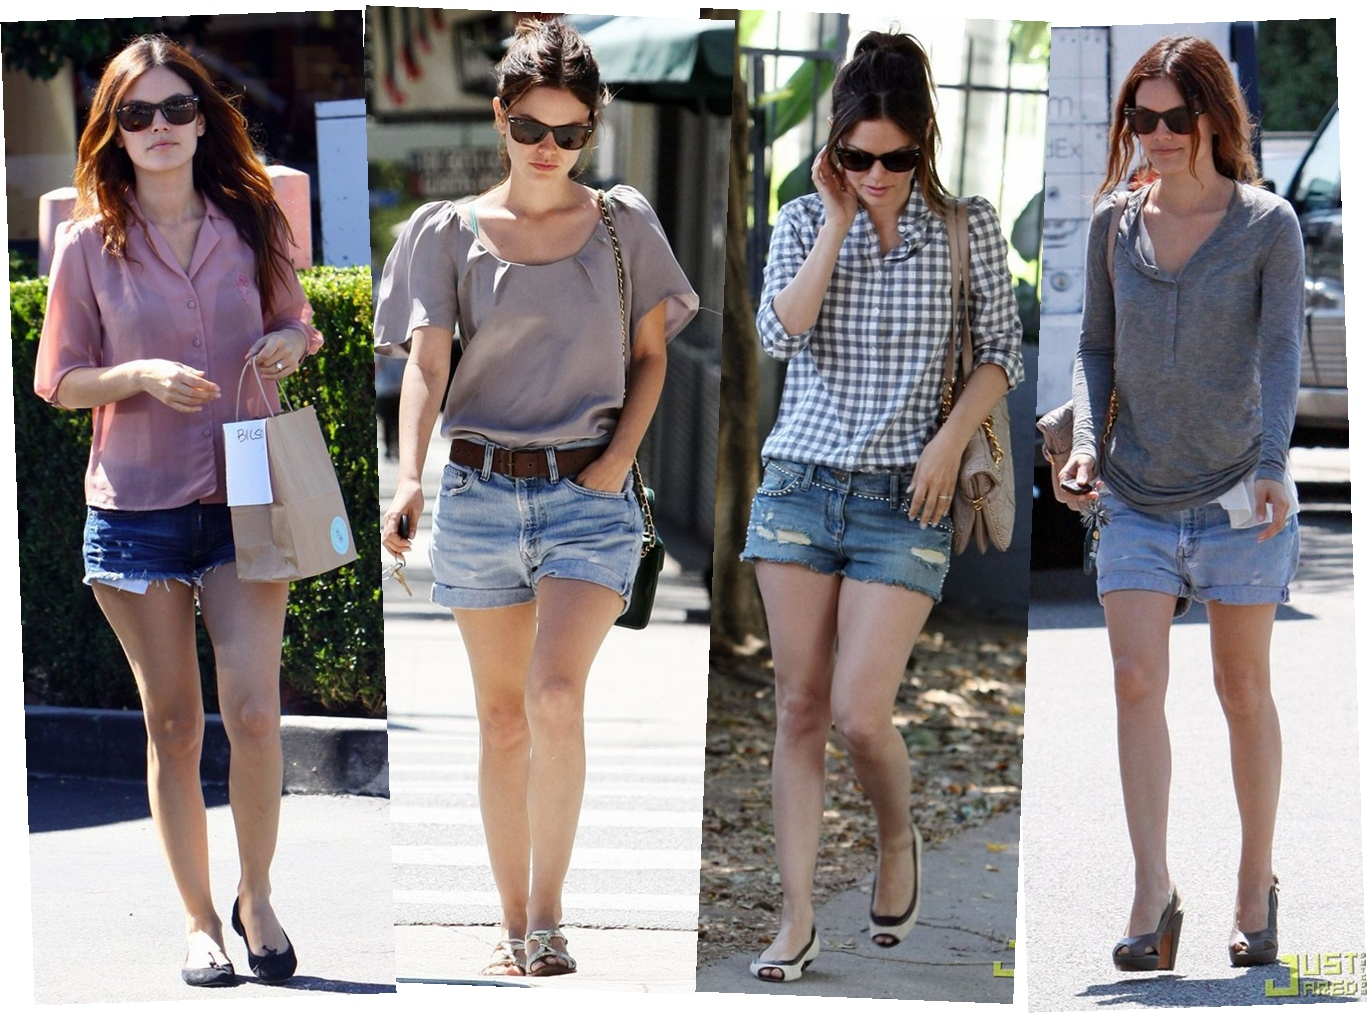 shorts-jeans 4